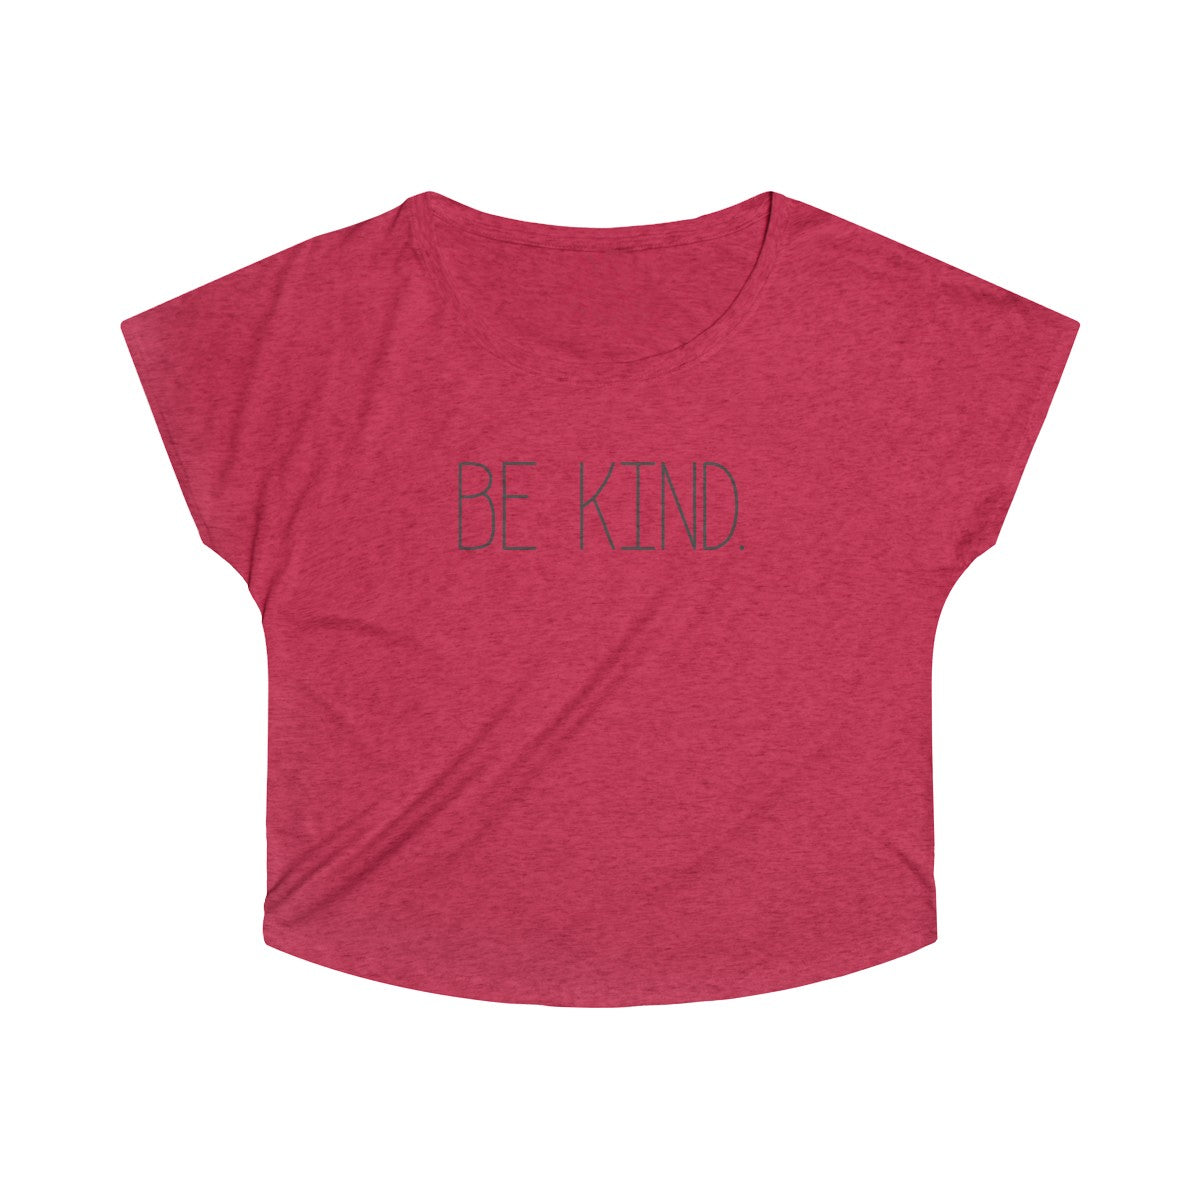 Be Kind Comfort Tri-Blend